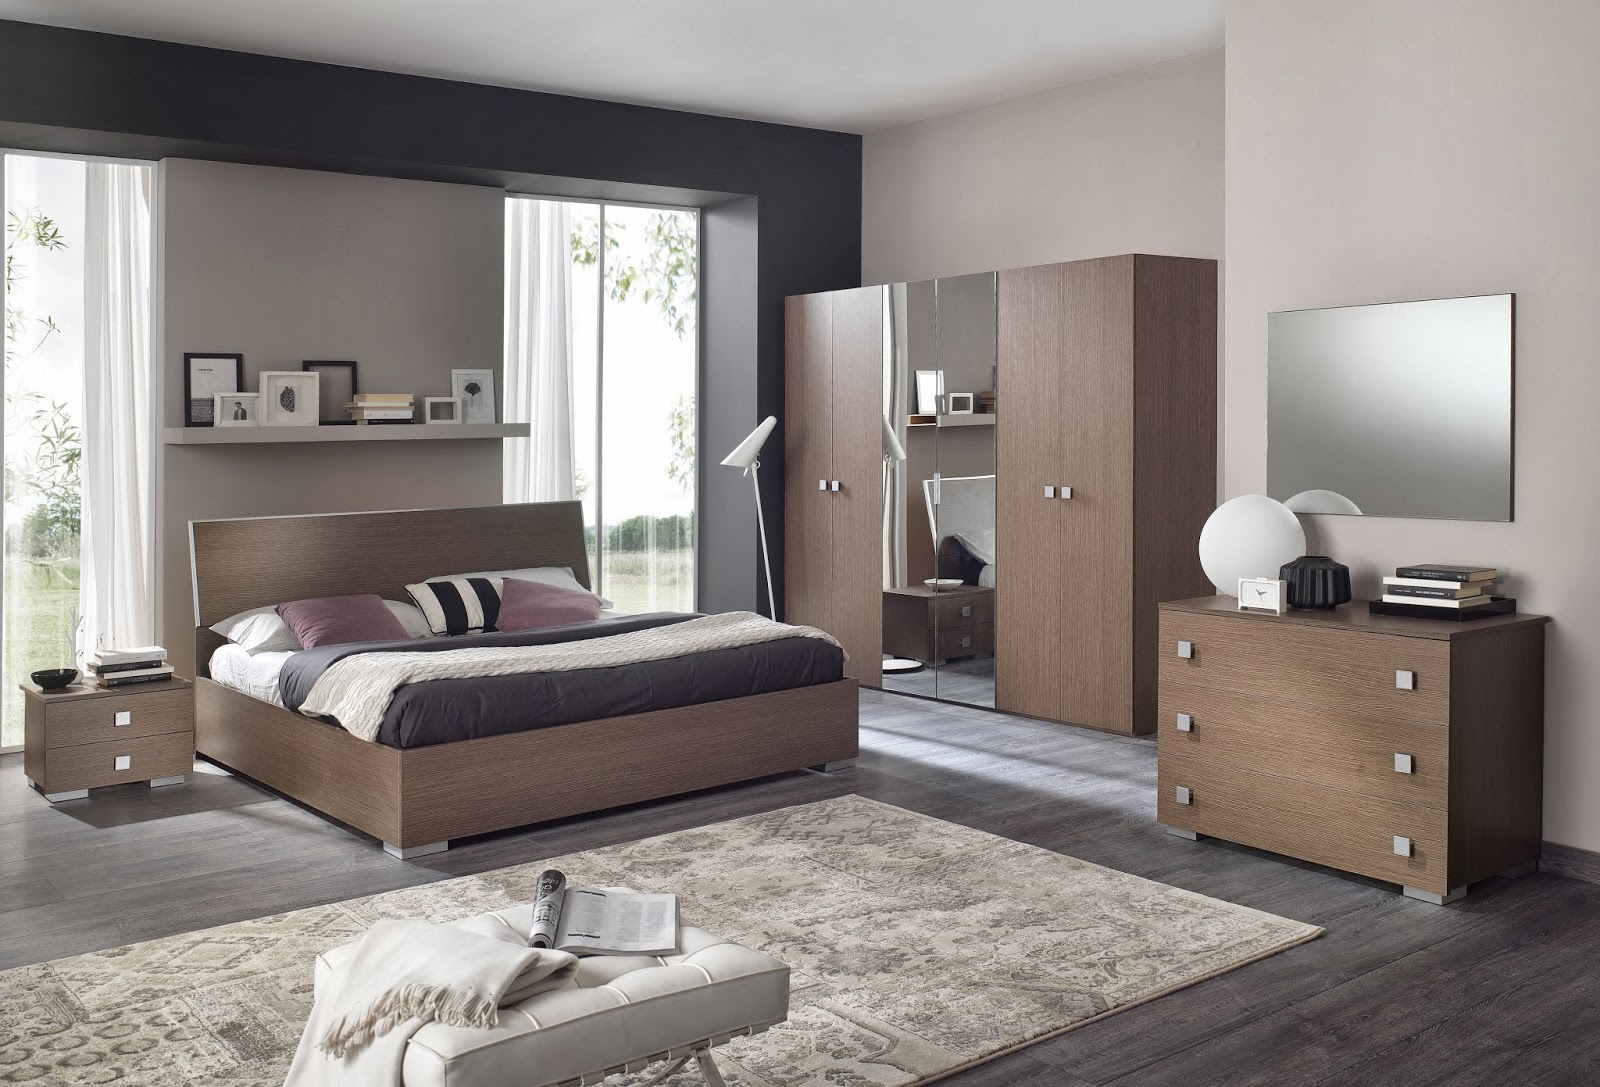 buy bedroom furniture online || vesmaeducation